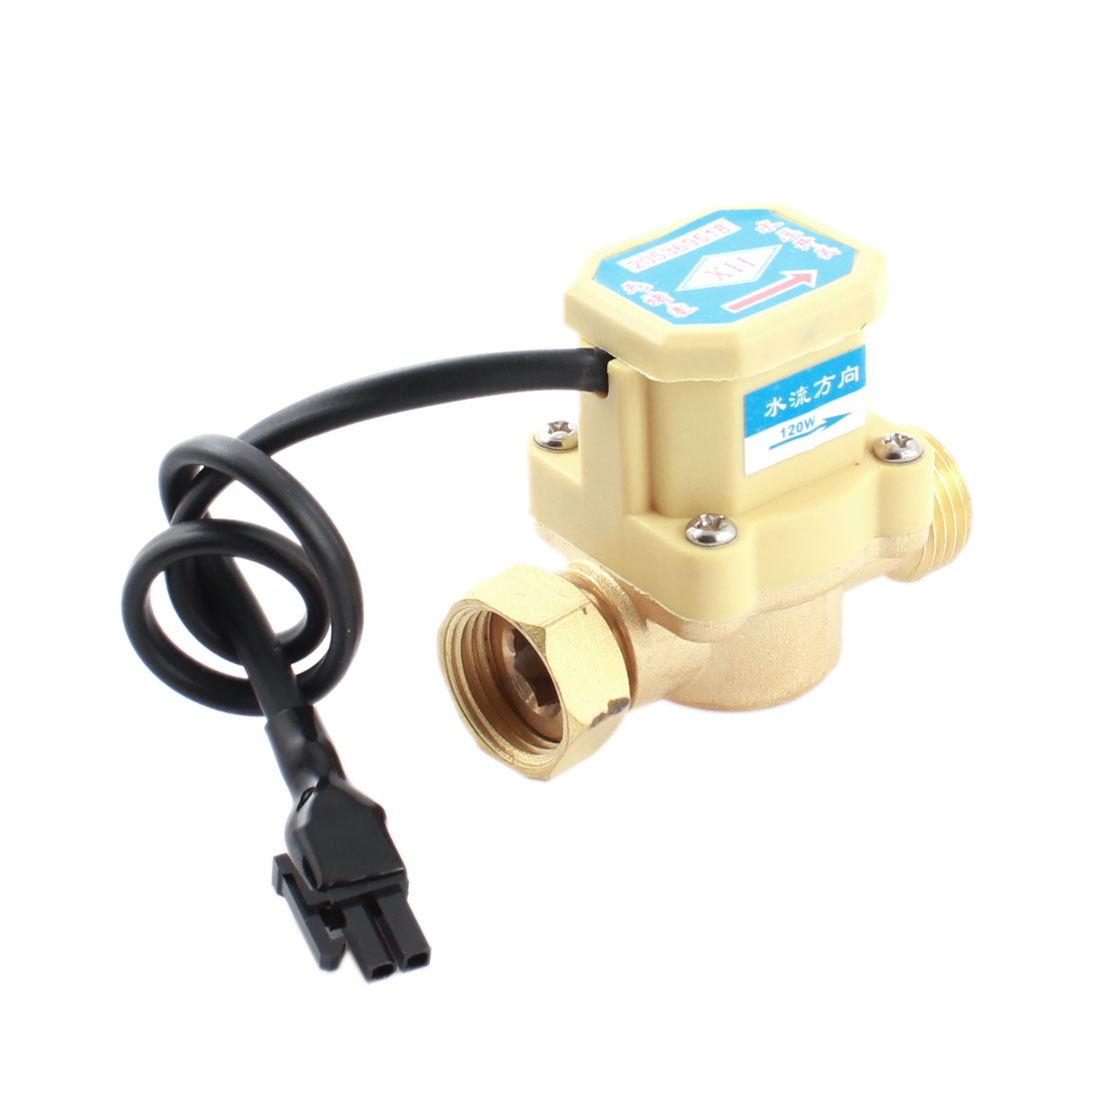 0.6Mpa 0.75-5L/min 1/2PT Male to 1/2PT Female Thread Water Fluid Flow Sensor Control Switch DC5-18V 120W